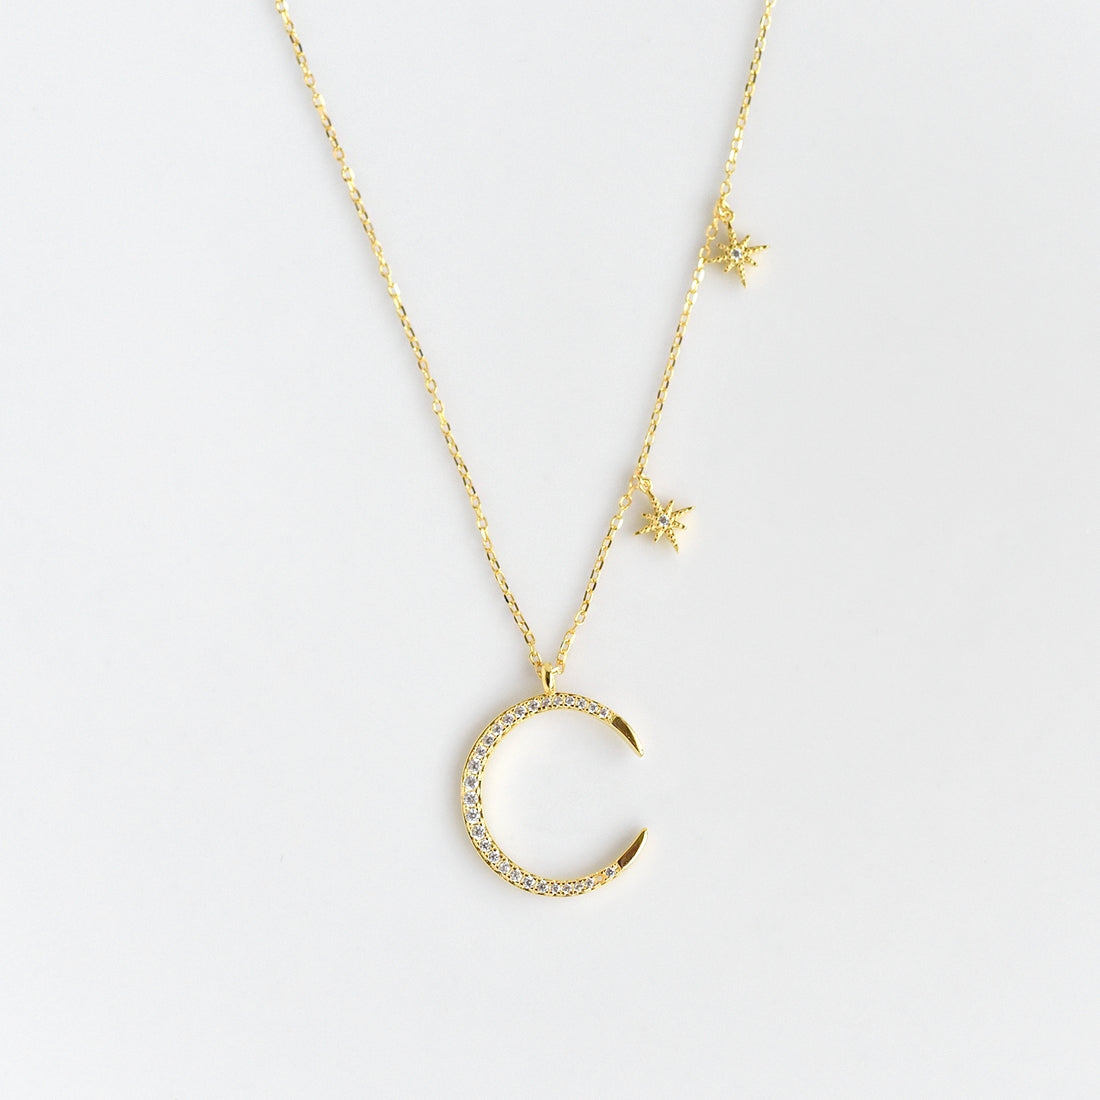 Gold Crescent Moon Necklace with Dangling Stars